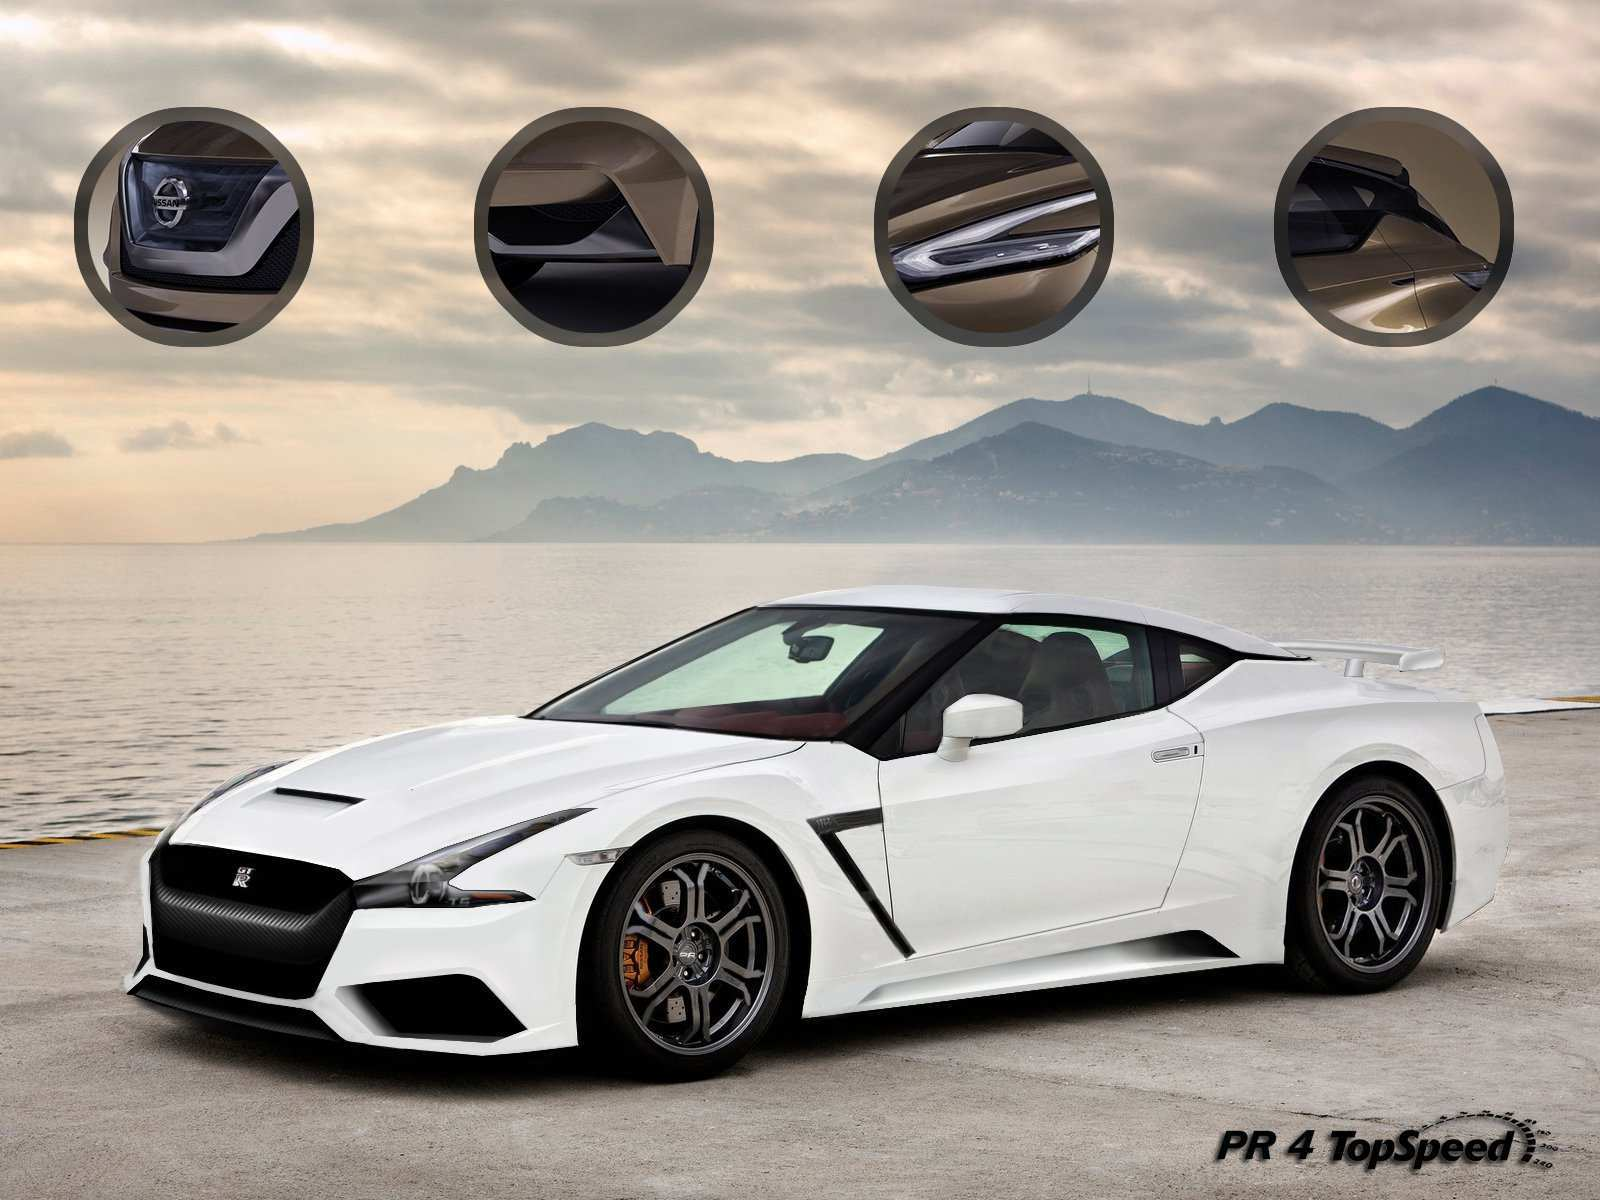 65 Best Review Nissan Gtr 2019 Top Speed Review by Nissan Gtr 2019 Top Speed